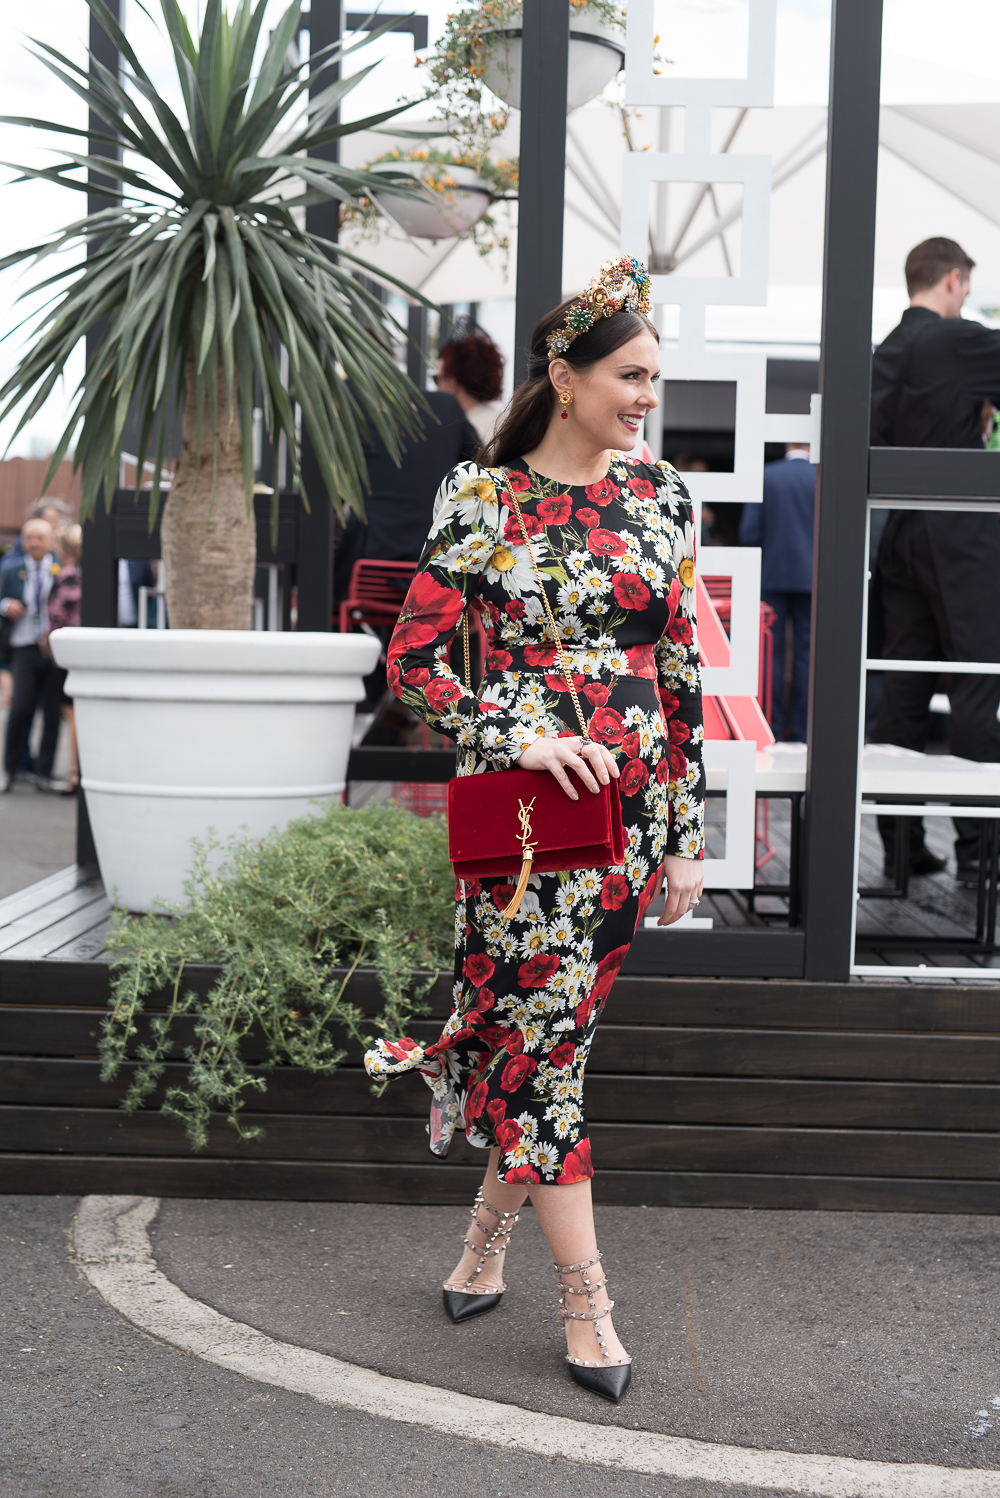 Melbourne Cup 2018 Fashion Tips, Dresses Hats - Punters 26